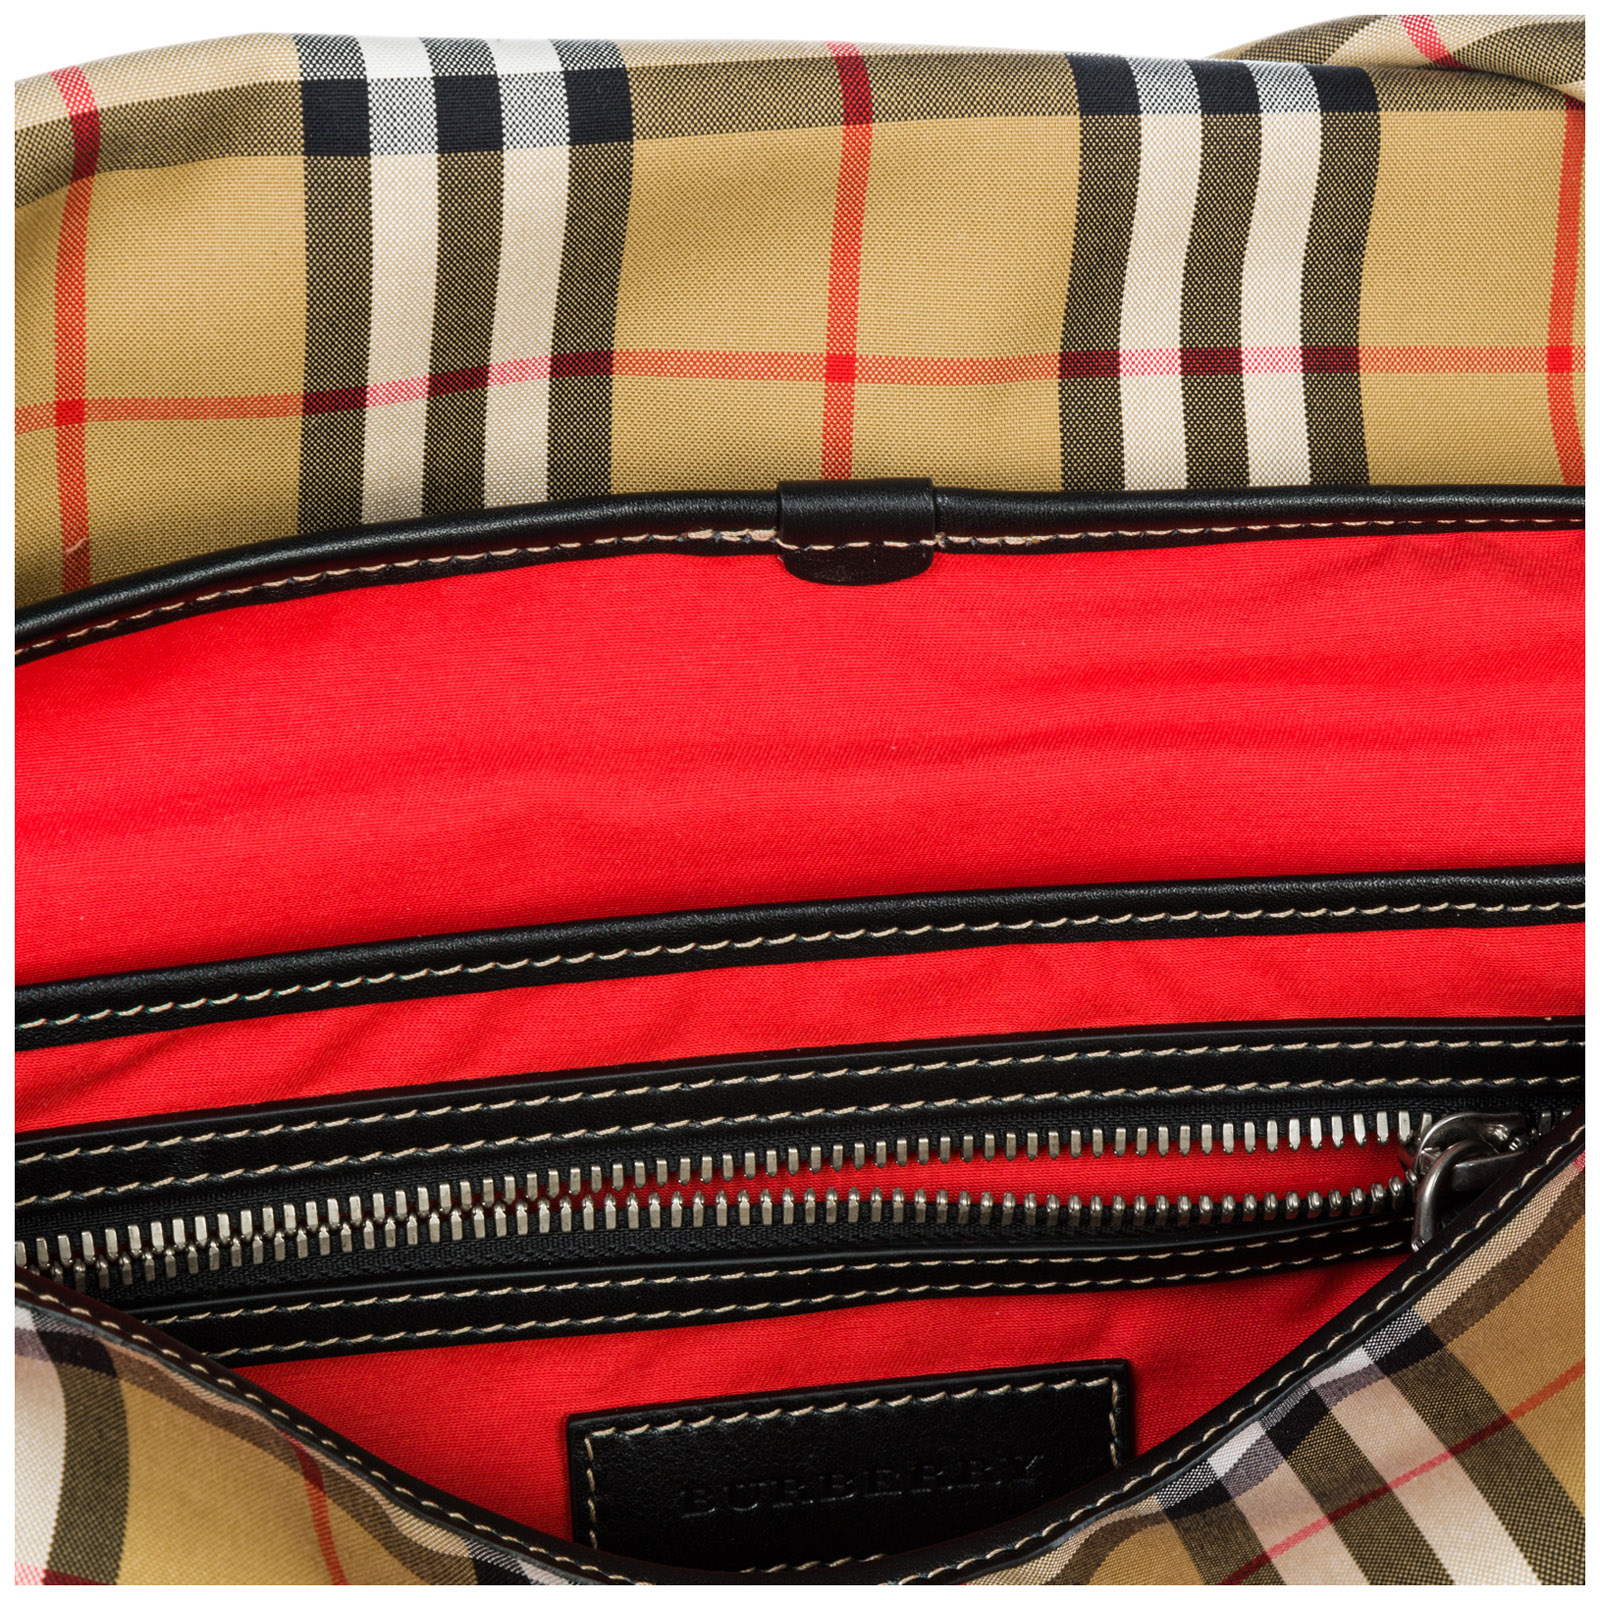 2dab5581c8c5 Crossbody bag Burberry Burleigh 40743601 military red